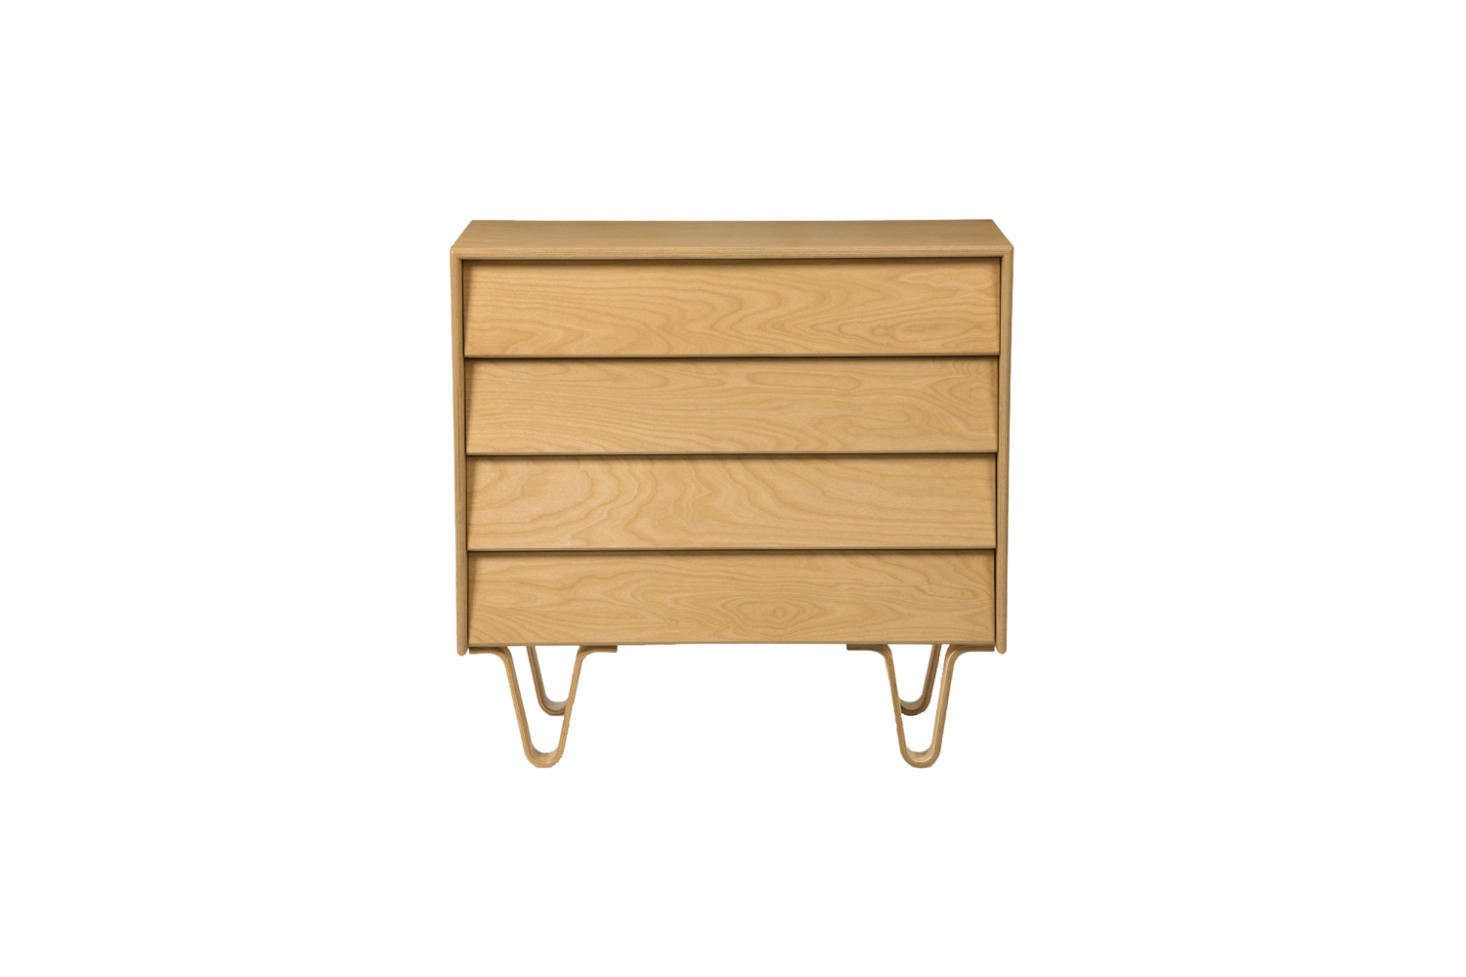 The Modernica chest of drawers that Carla sourced is no longer available. The companion piece to the bed is the Case Study Bentwood 4 Drawer Dresser in Classic Stain; $